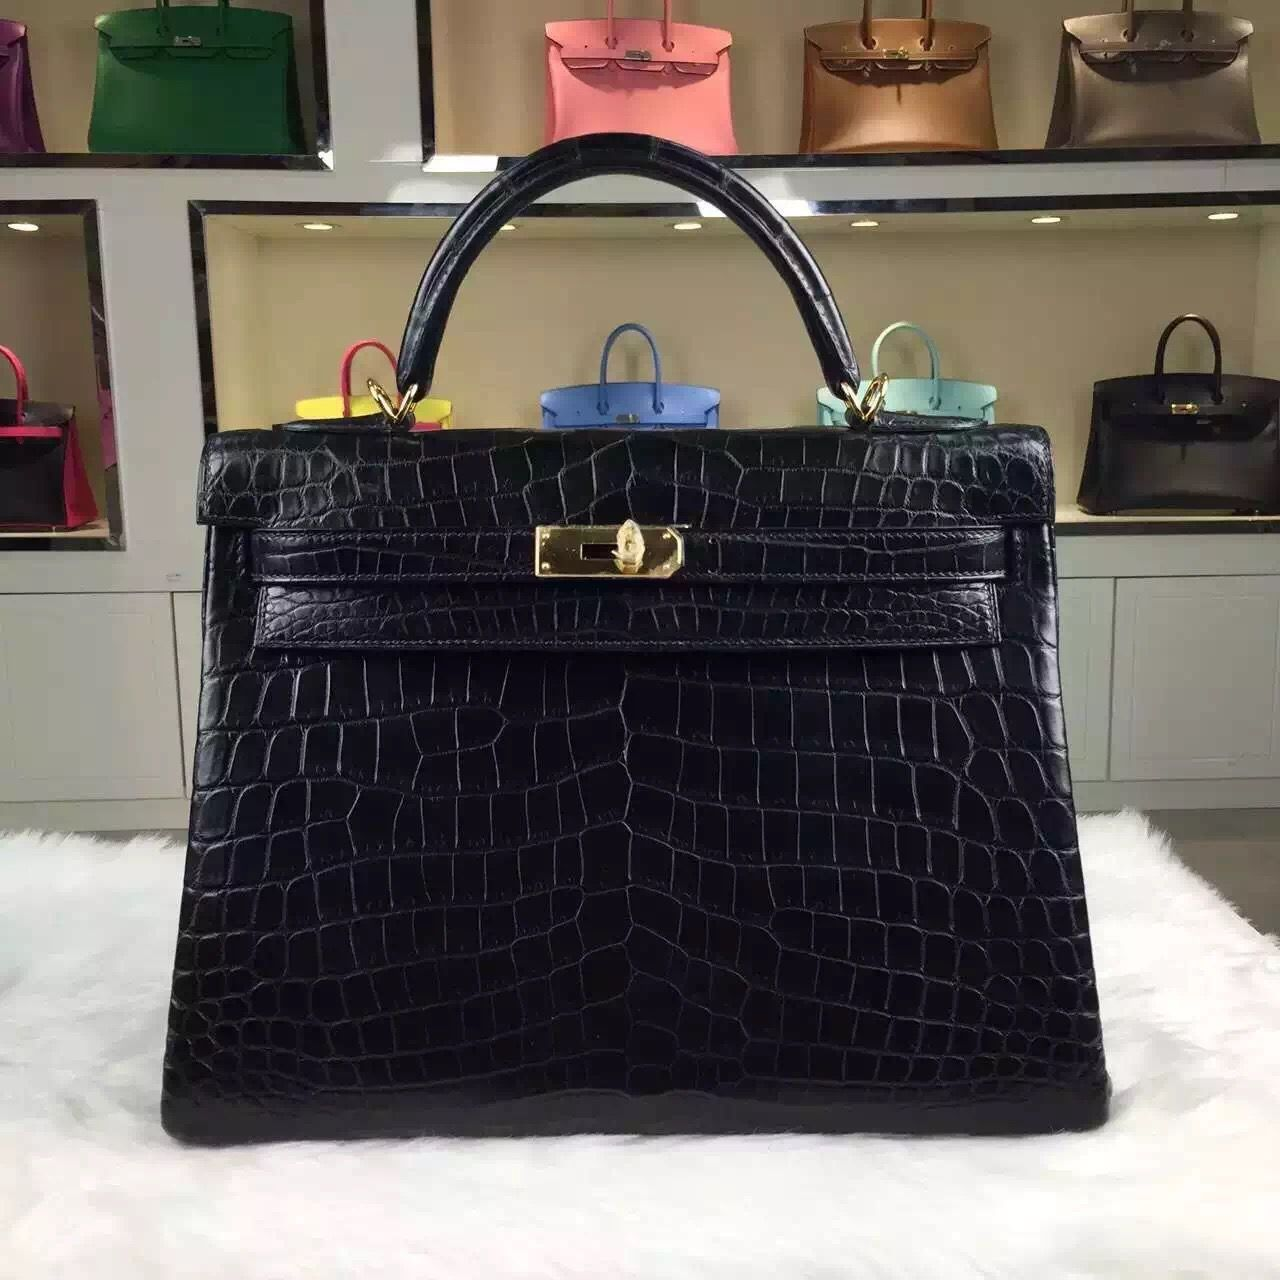 f12609d64dc1 Brand  Hermes  Style  Kelly Bag 32CM   Material  Crocodile matt Leather(HCP  Original Leather)  Color  Black  Hardware  gold silver  Accessories   Padlock and ...